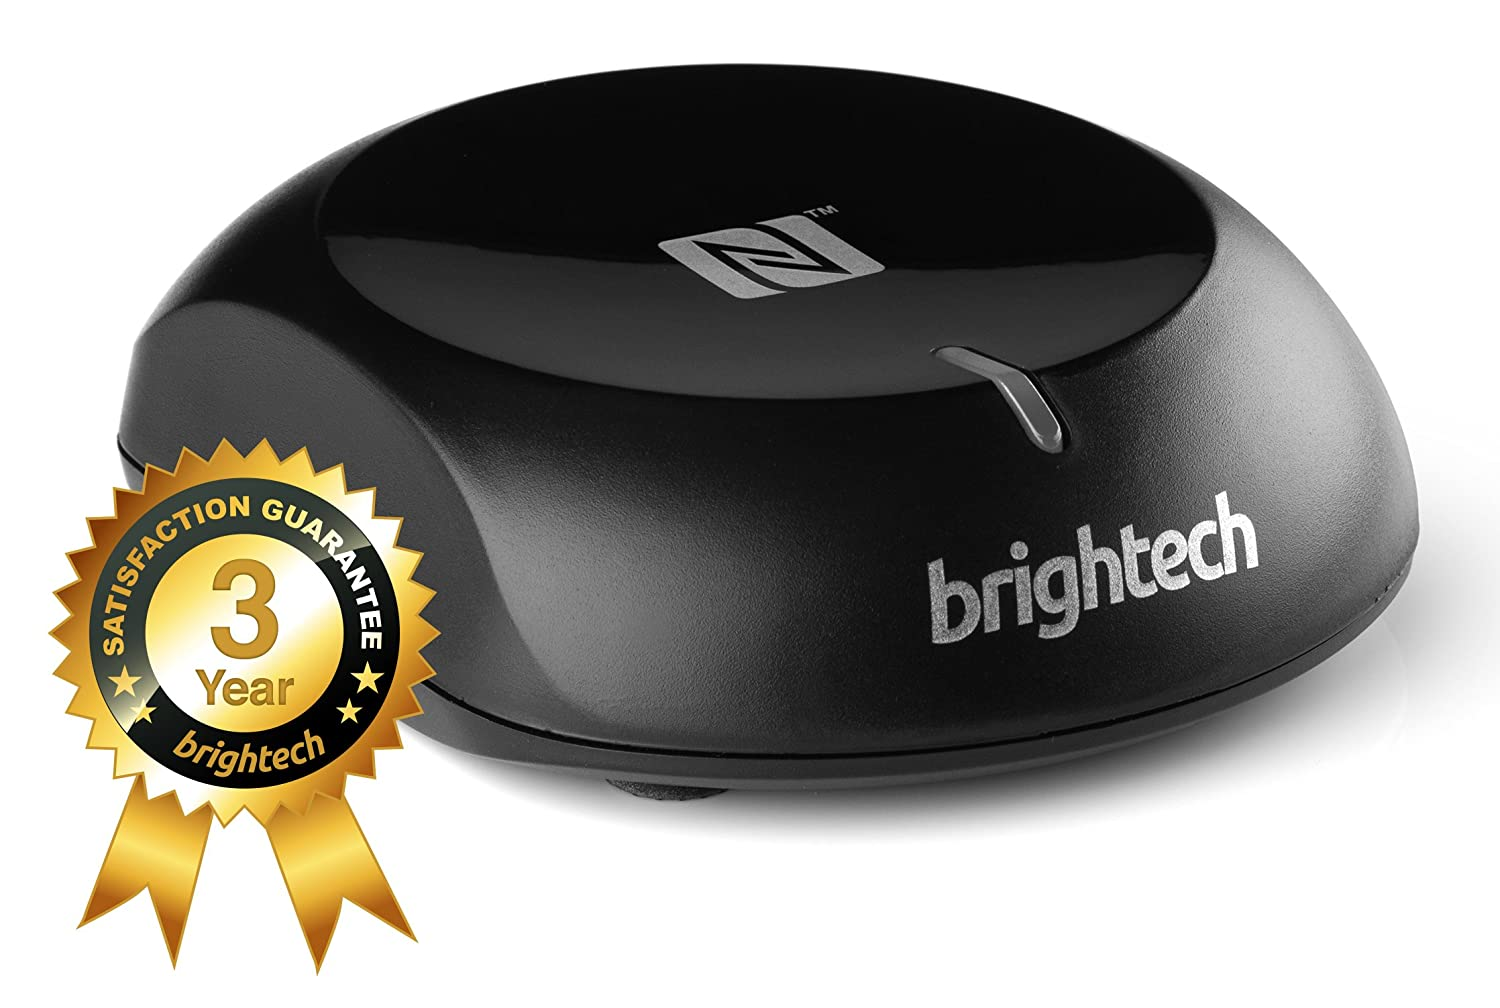 Brightech - BrightPlay Live™ - NFC Enabled HiFi Bluetooth 4.0 Audio Receiver / Adapter - Bring Your Old Stereo Systems and Speakers Back to Life - Fast and Simple Upgrade - Frustration Free Eco Packaging